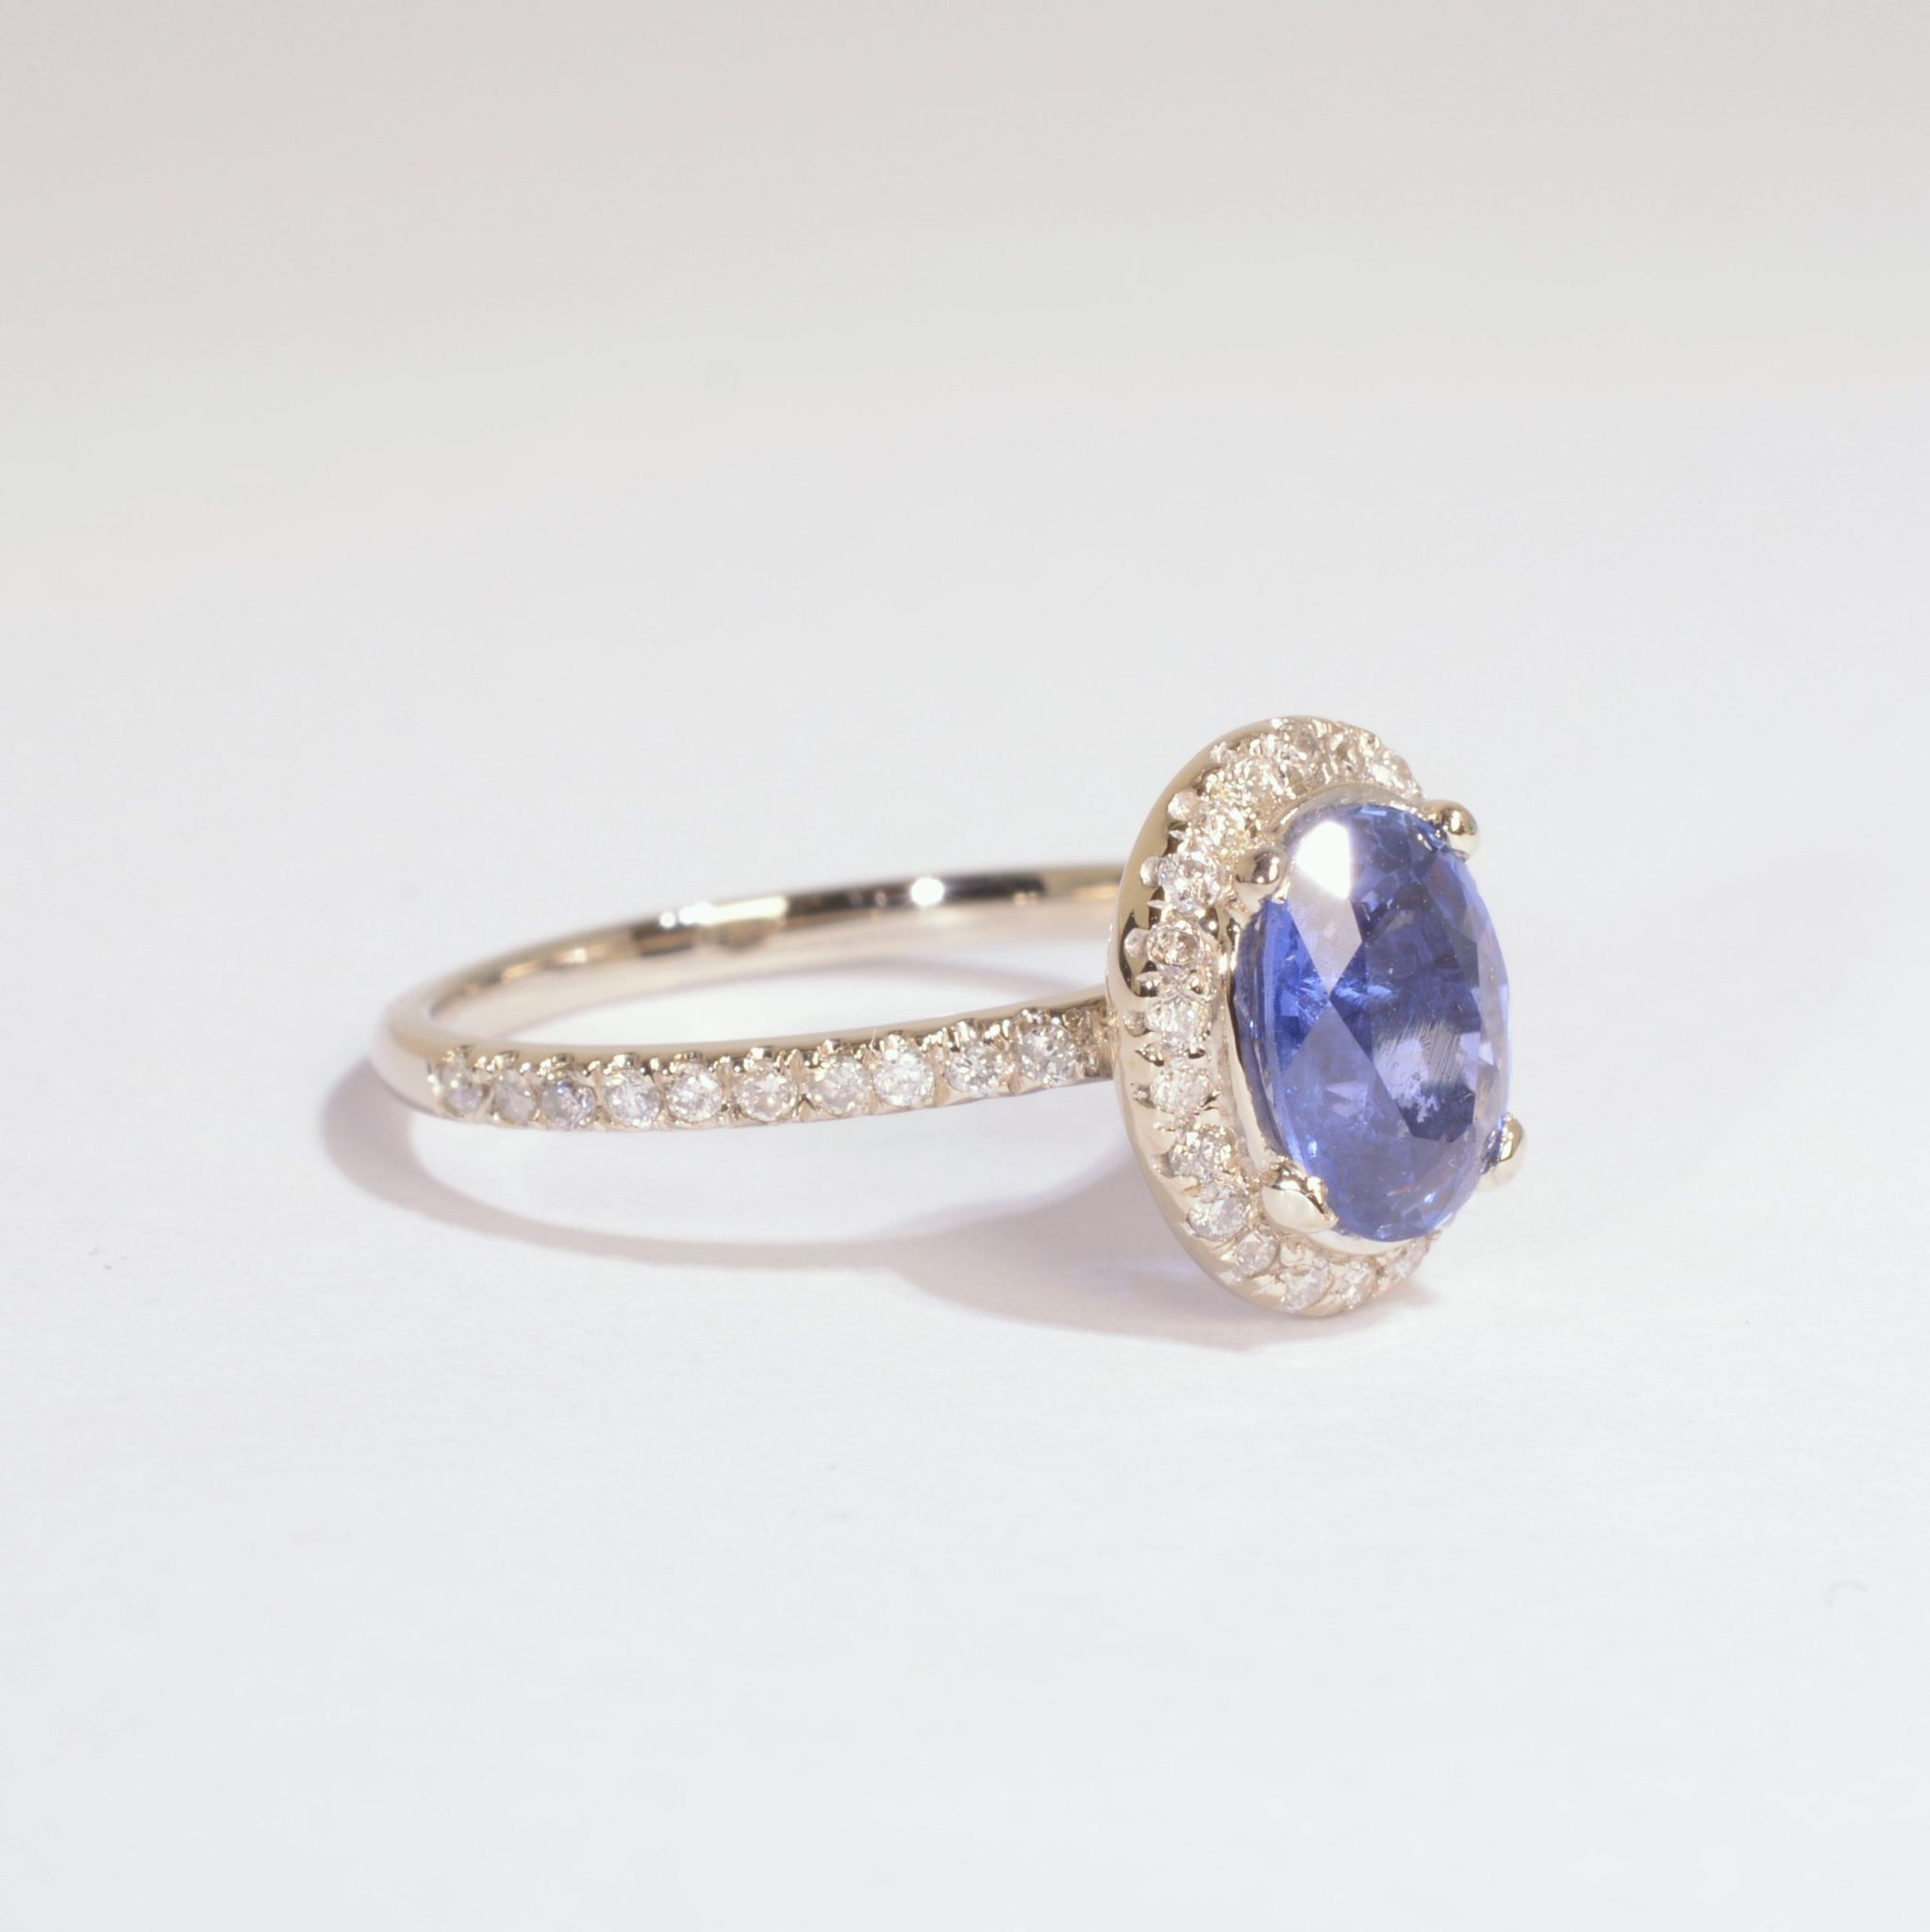 cz g center white engagement ring gold rings product ladies sapphire and with stone blue simon diamond